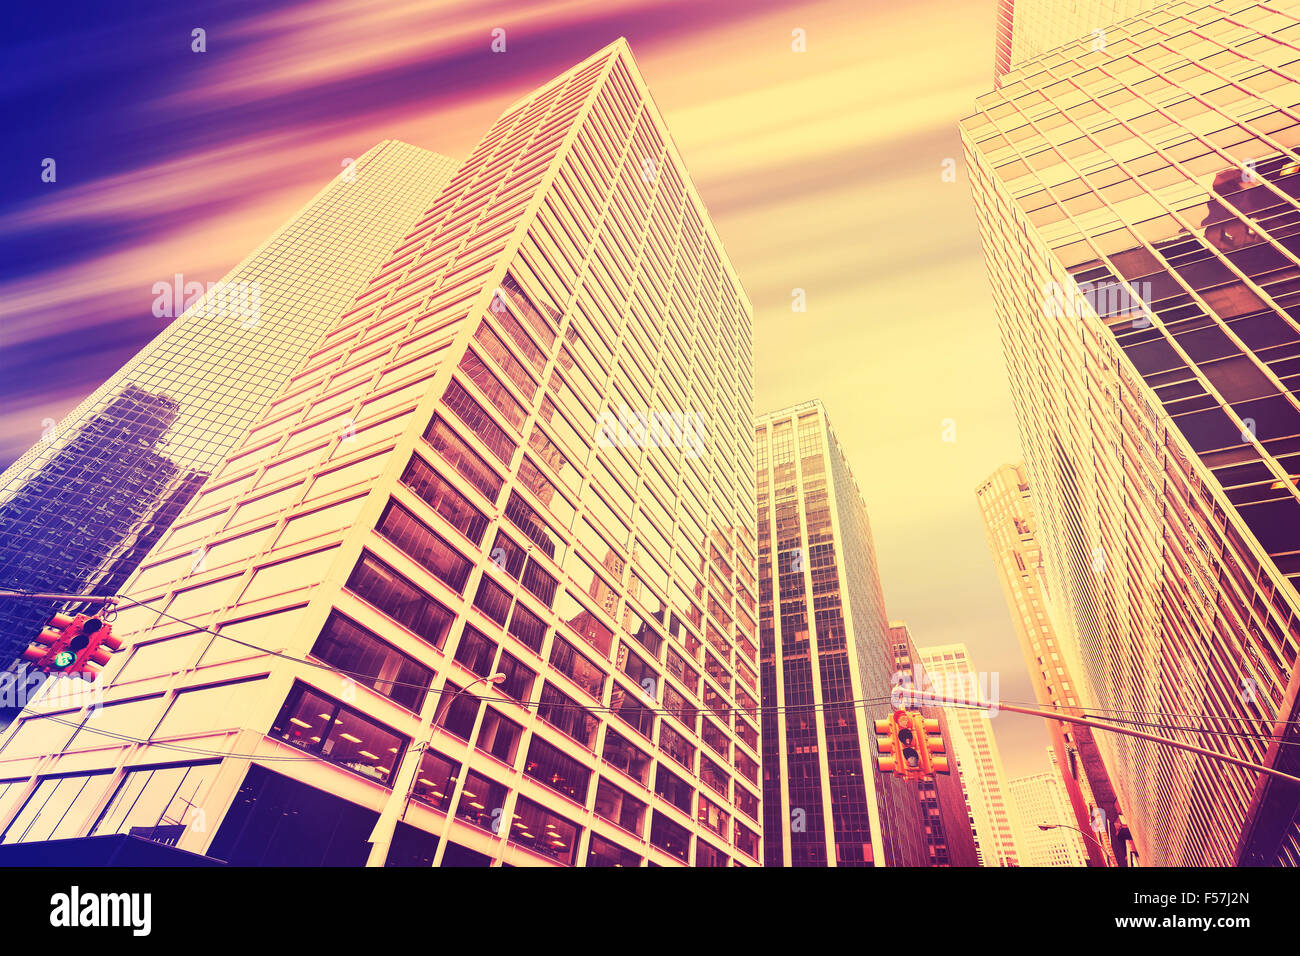 Vintage toned skyscrapers with motion blurred sky, modern business background. - Stock Image